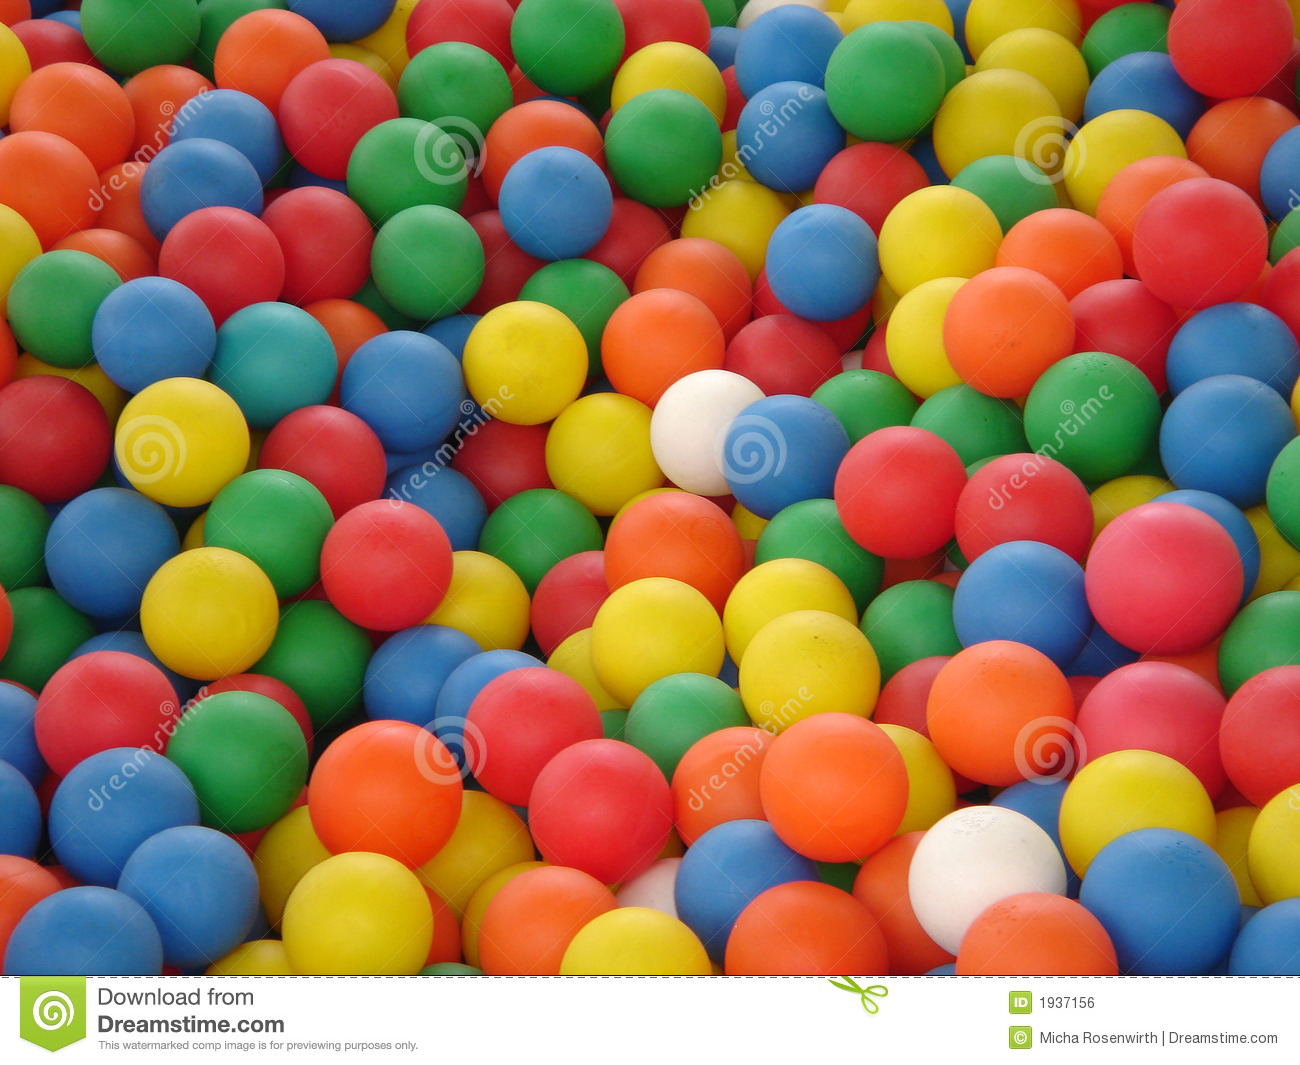 Home Remedies For Cleaning Car Interior Colored Balls 28 Images The Pit Show For Learning